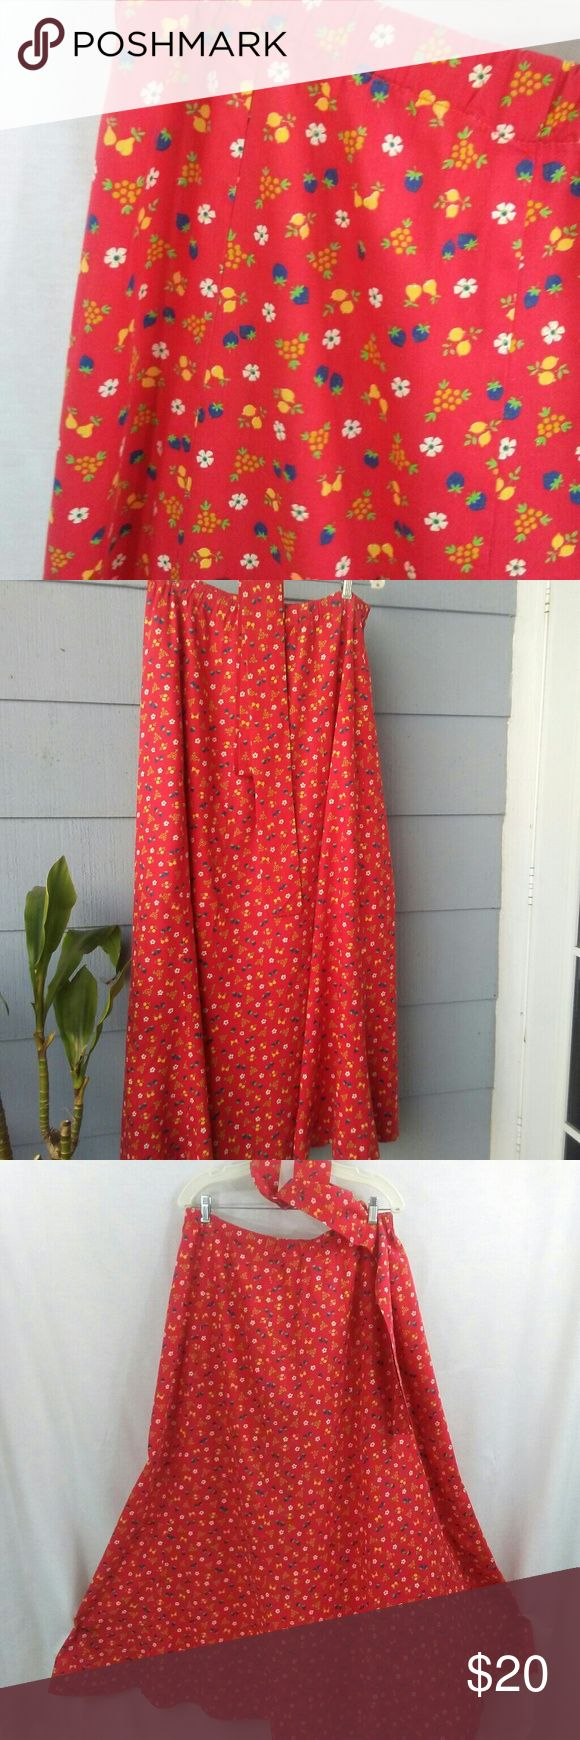 "Vintage 70s skirt Sweet vintage skirt. Colors are vibrant red-orange background with lemons, berries and flowers. Wear with sandals or boots. Great skirt to wear to a farmers market or a outdoor summer event. 100% cotton. Measurements: 35"" waist. (Elastic band can be left as is or replaced to fit desired fit). Length 41"", wide skirt for dramatic flow. Perfect with a simple t shirt. Vintage Skirts A-Line or Full"